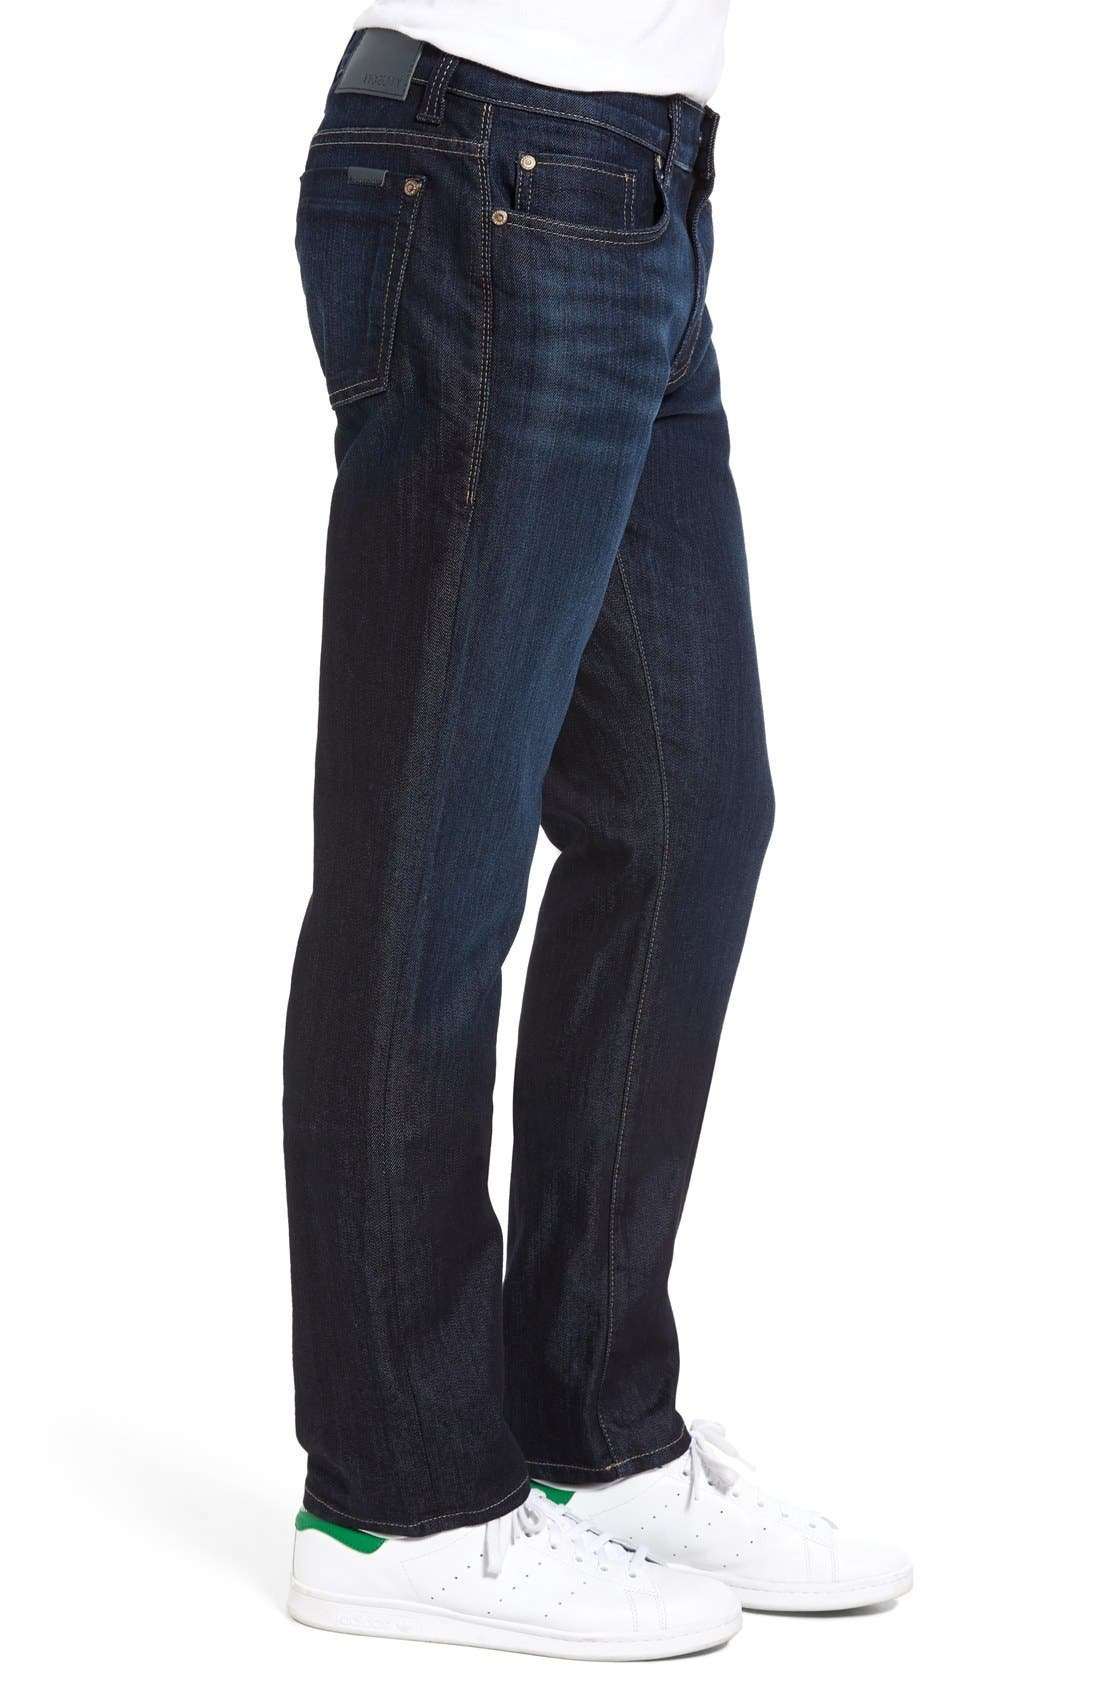 Impala Straight Leg Jeans,                             Alternate thumbnail 3, color,                             Lunar Blue